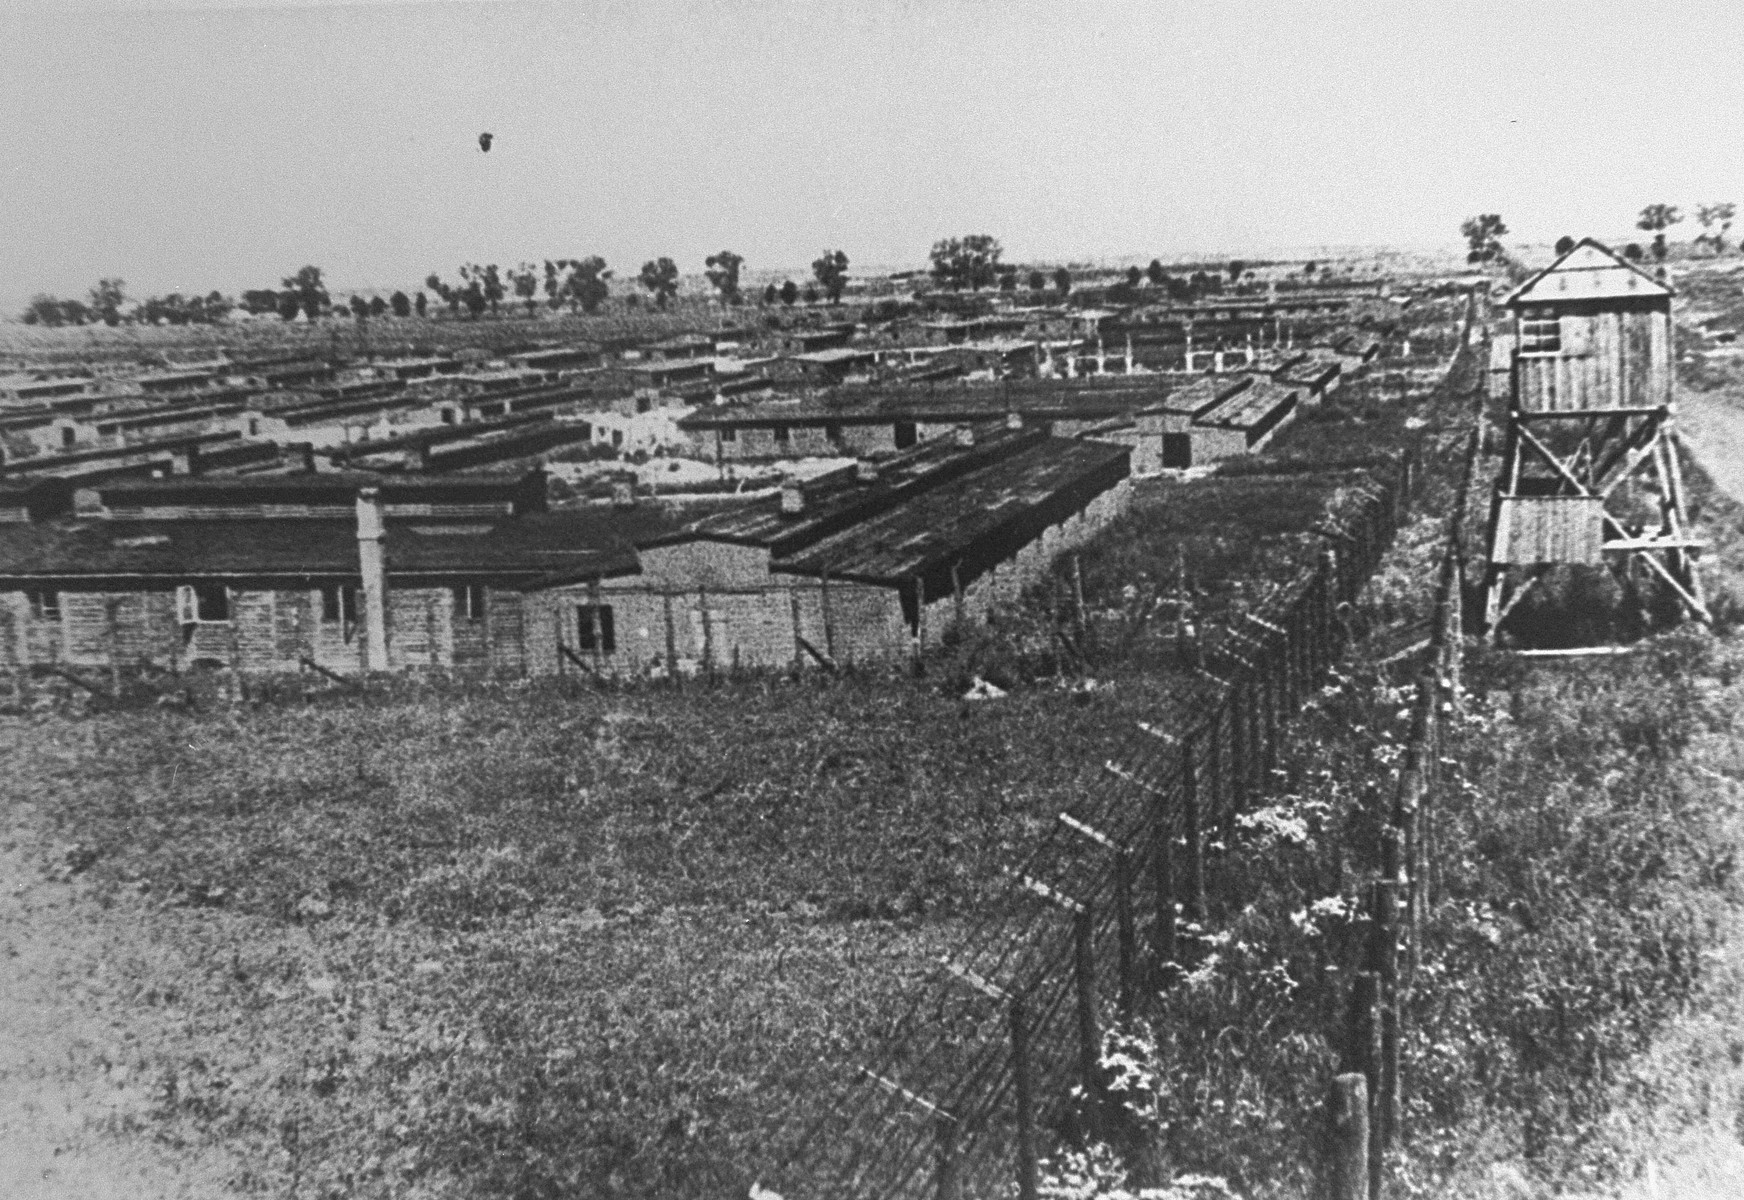 A view of the Majdanek concentration camp after liberation.